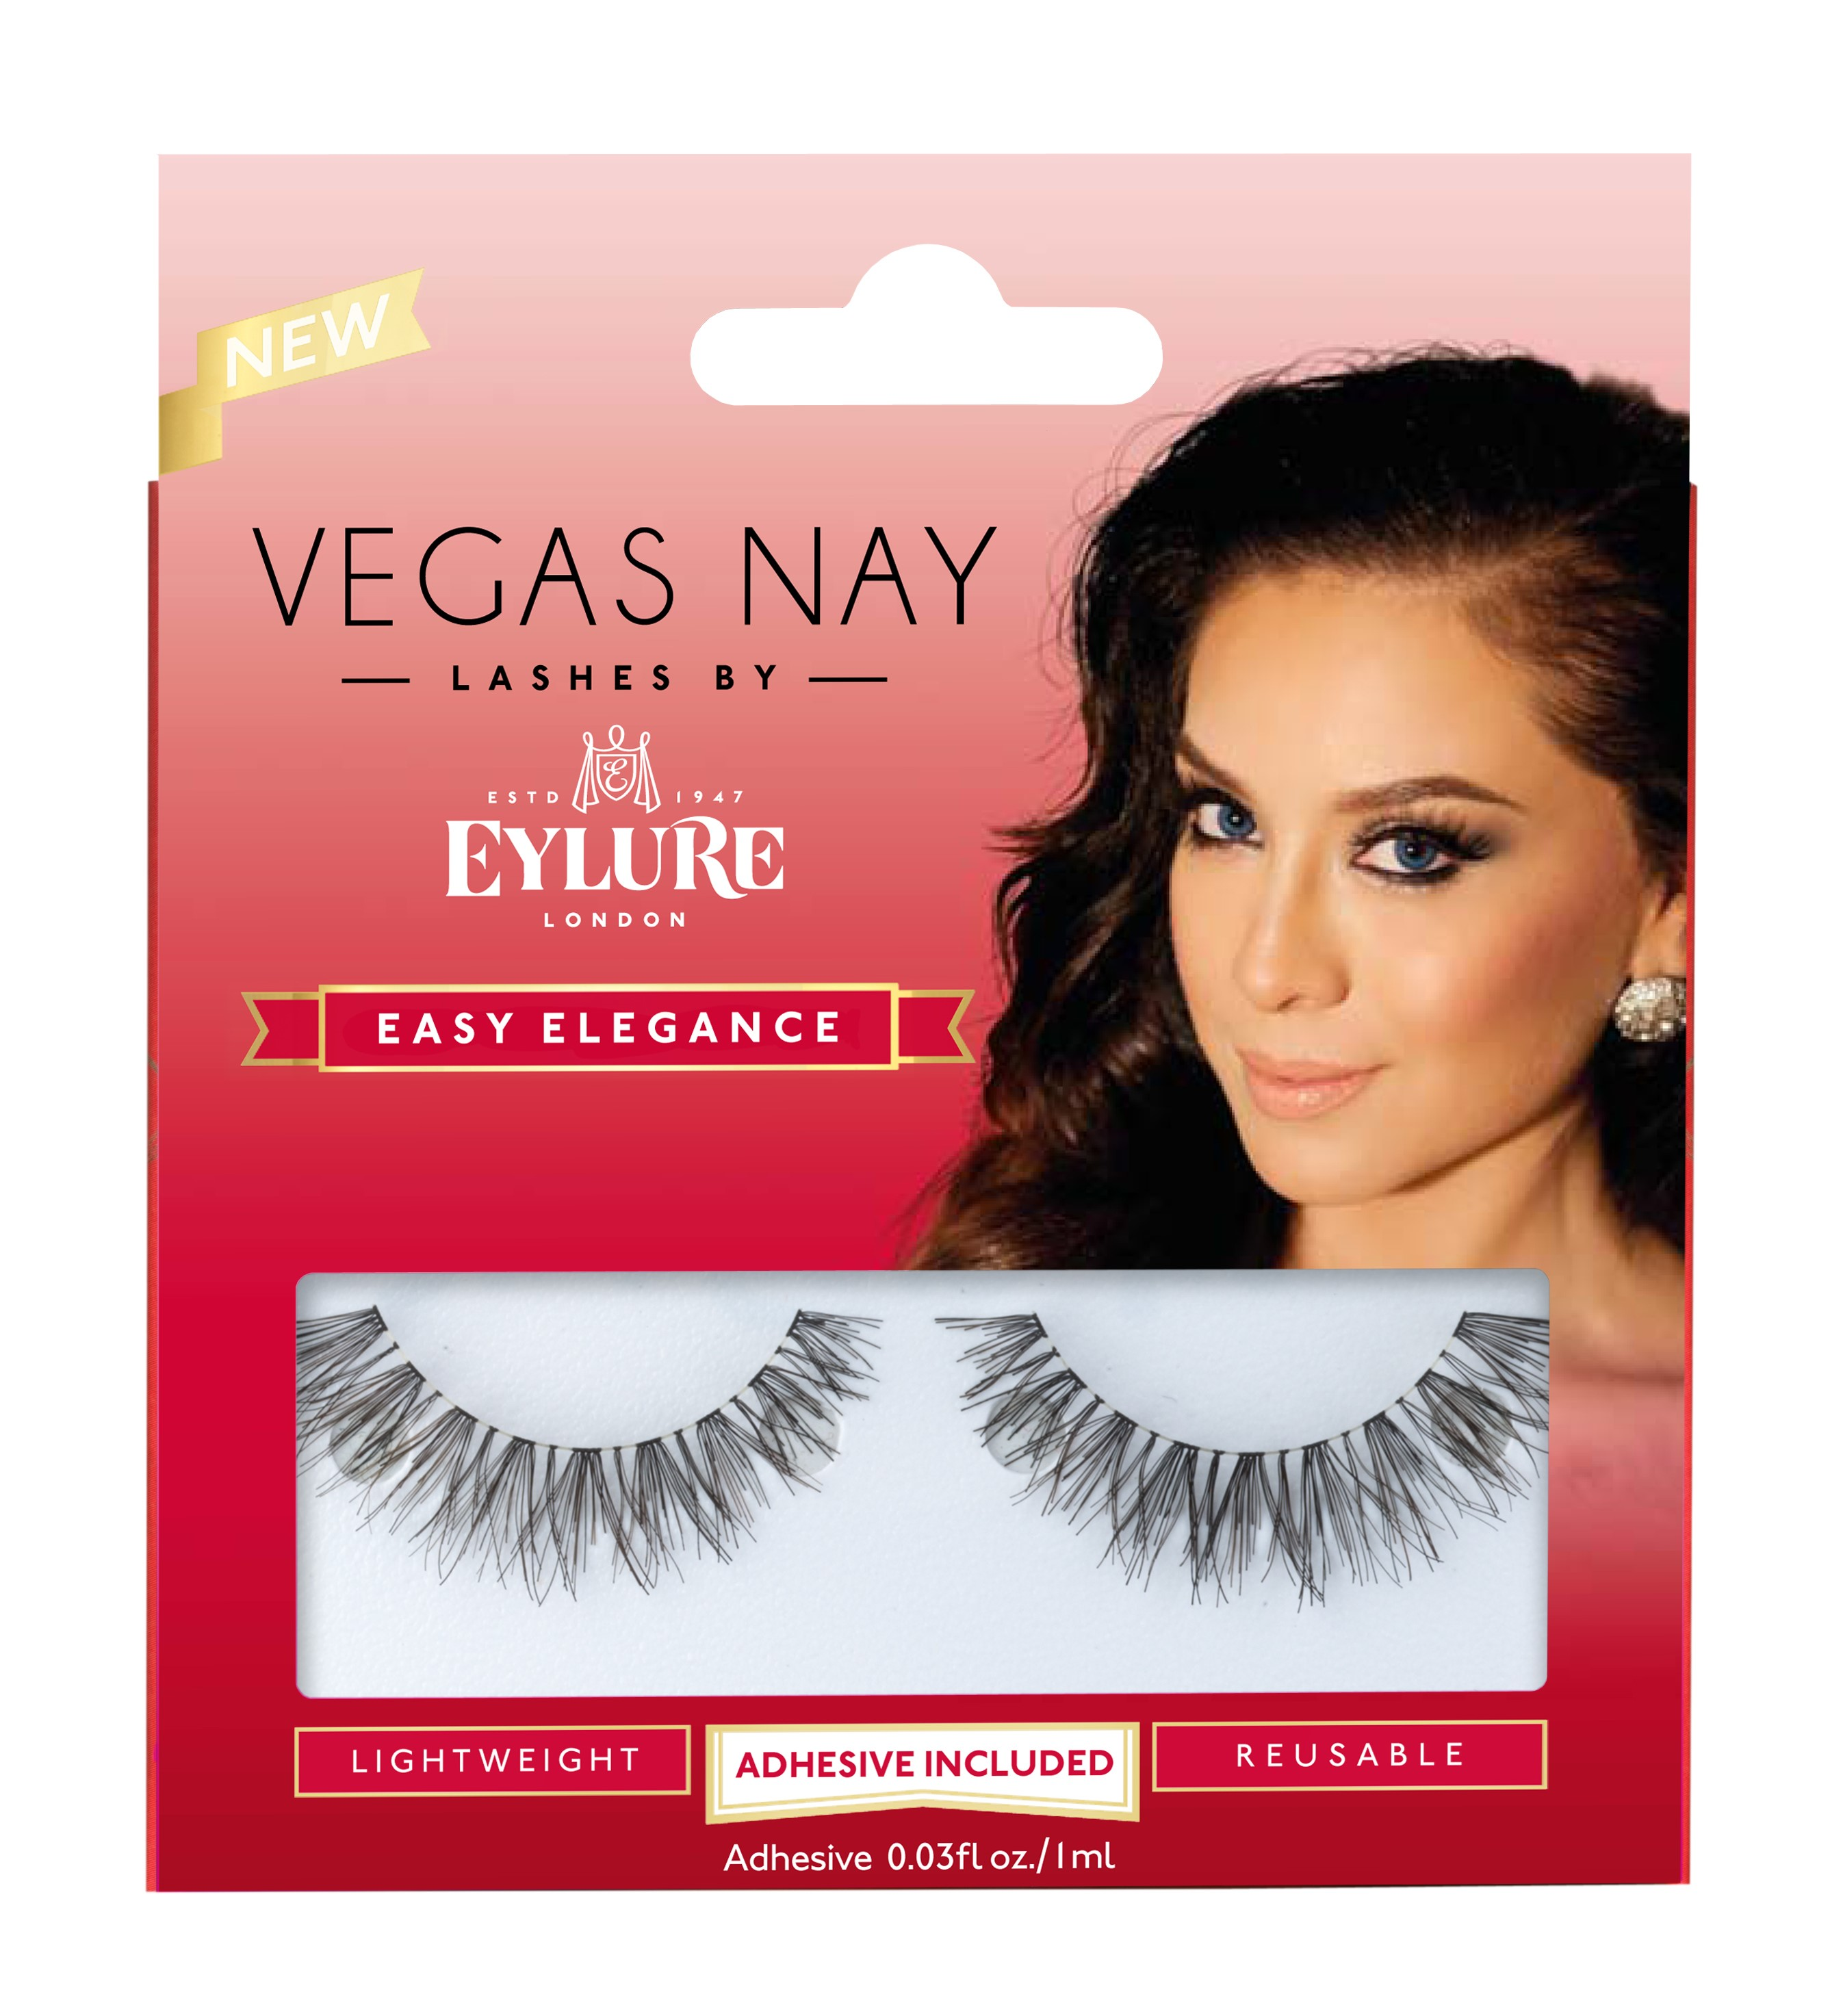 Vegas Nay by Eylure Easy Elegance Eyelashes Kit, 2 pc